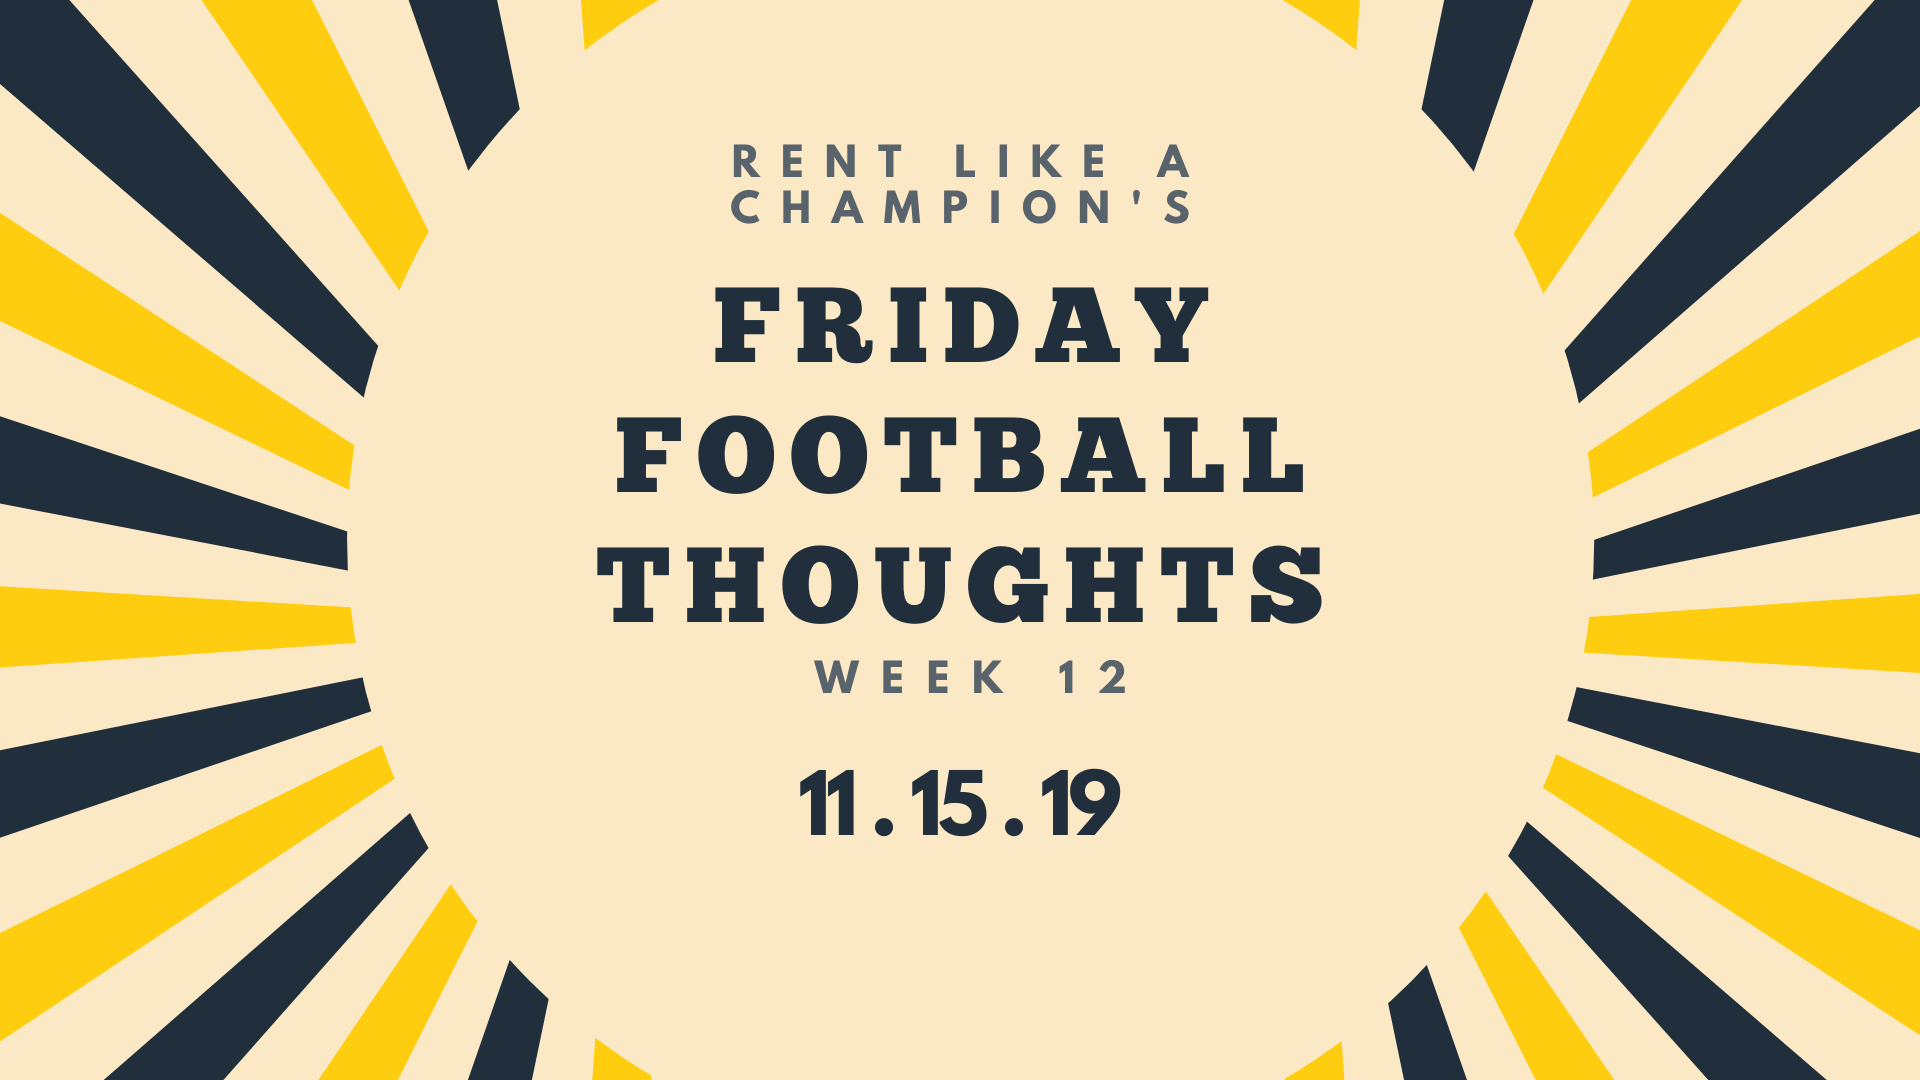 Friday Football Thoughts Template (4)